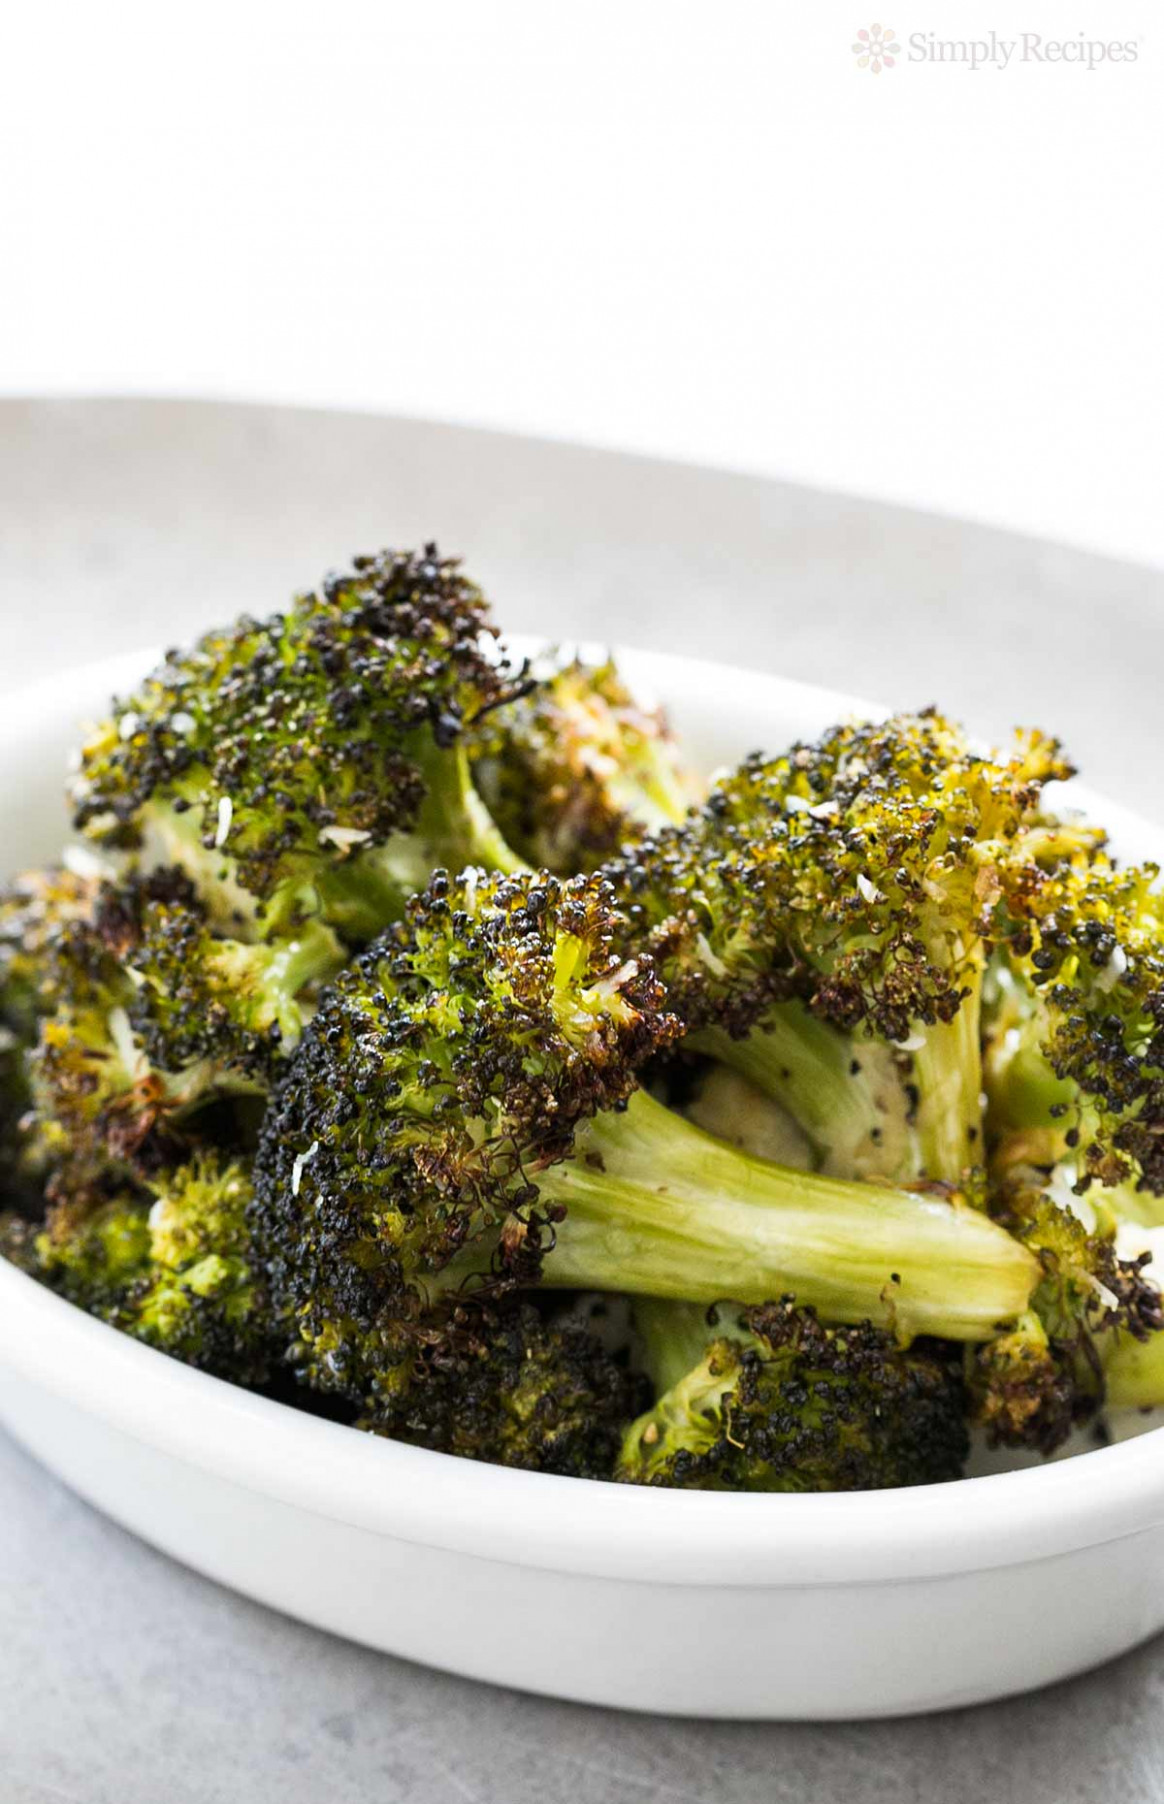 Roasted Broccoli with Parmesan Recipe | SimplyRecipes.com